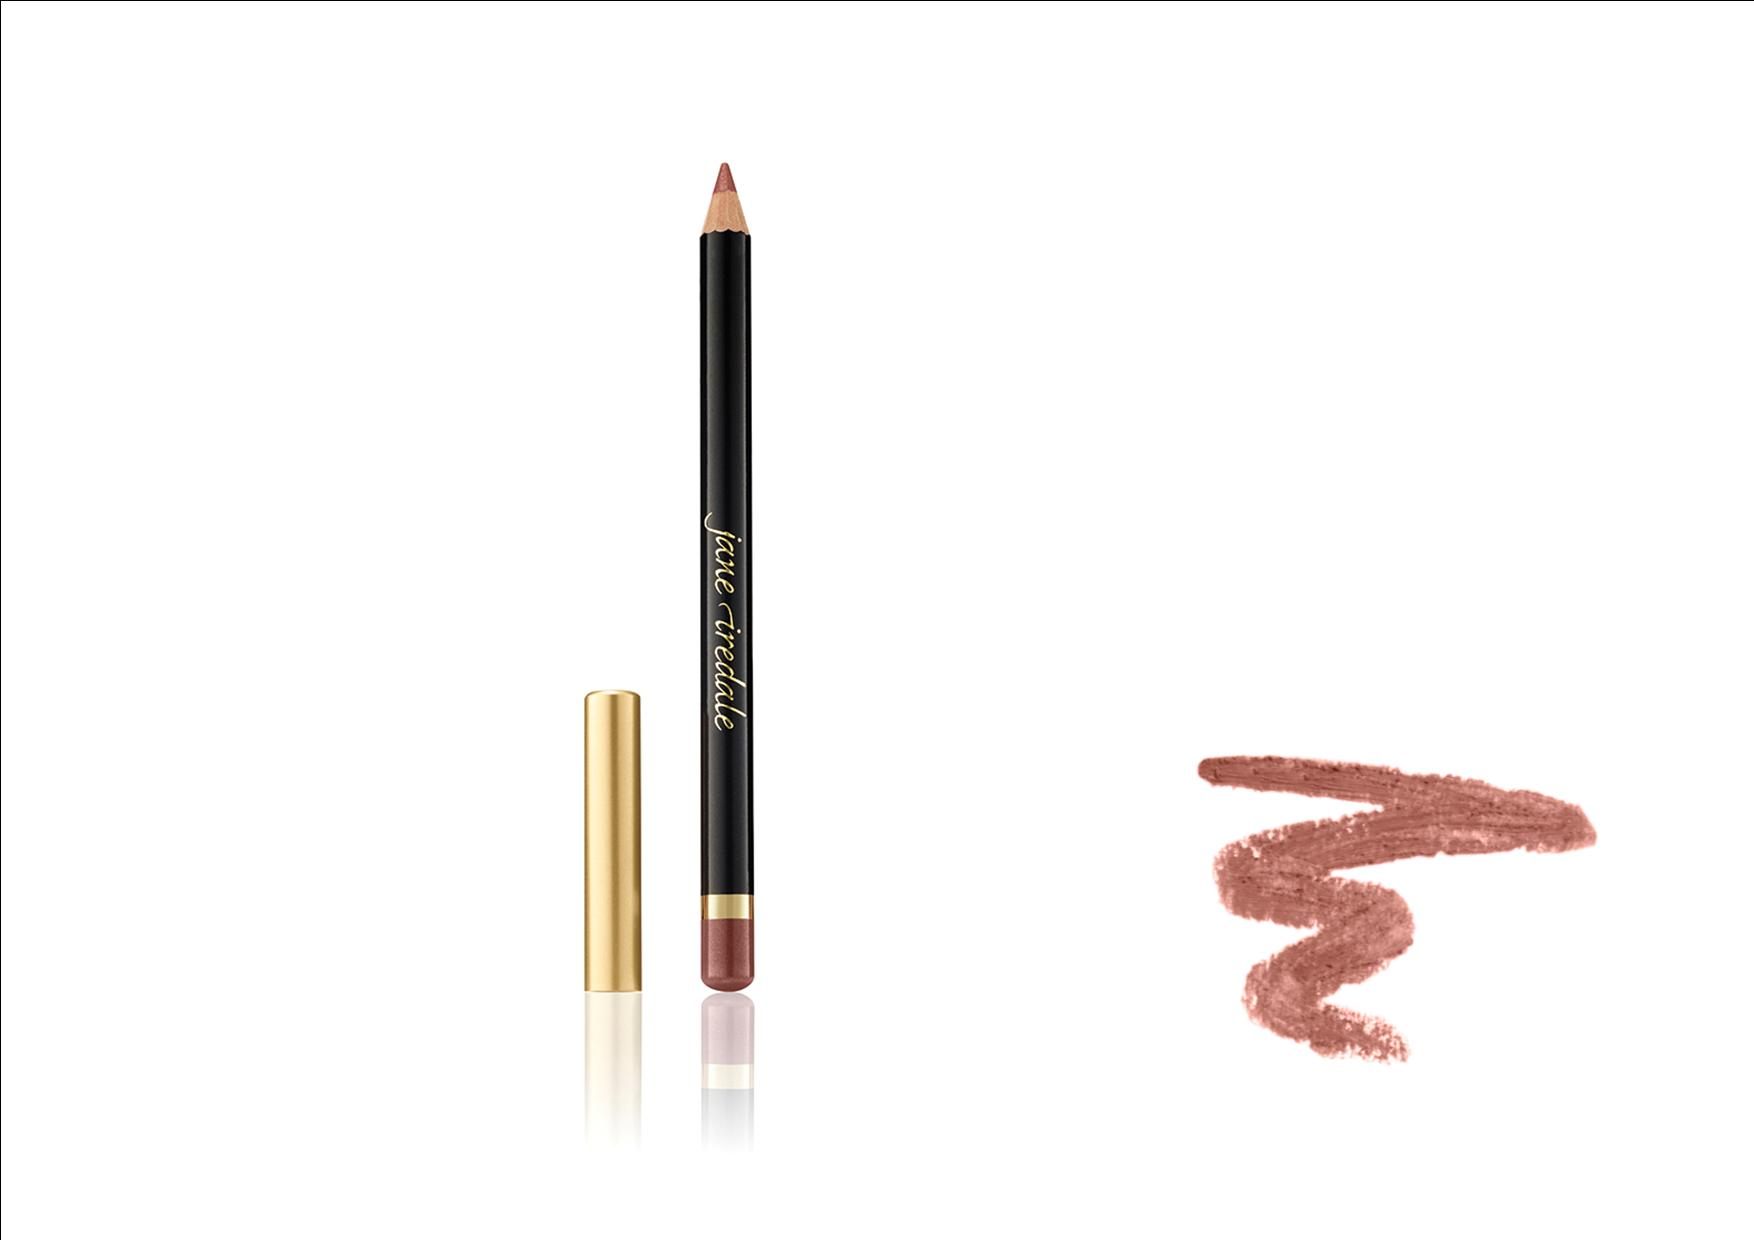 Jane Iredale Lip Pencils Spice